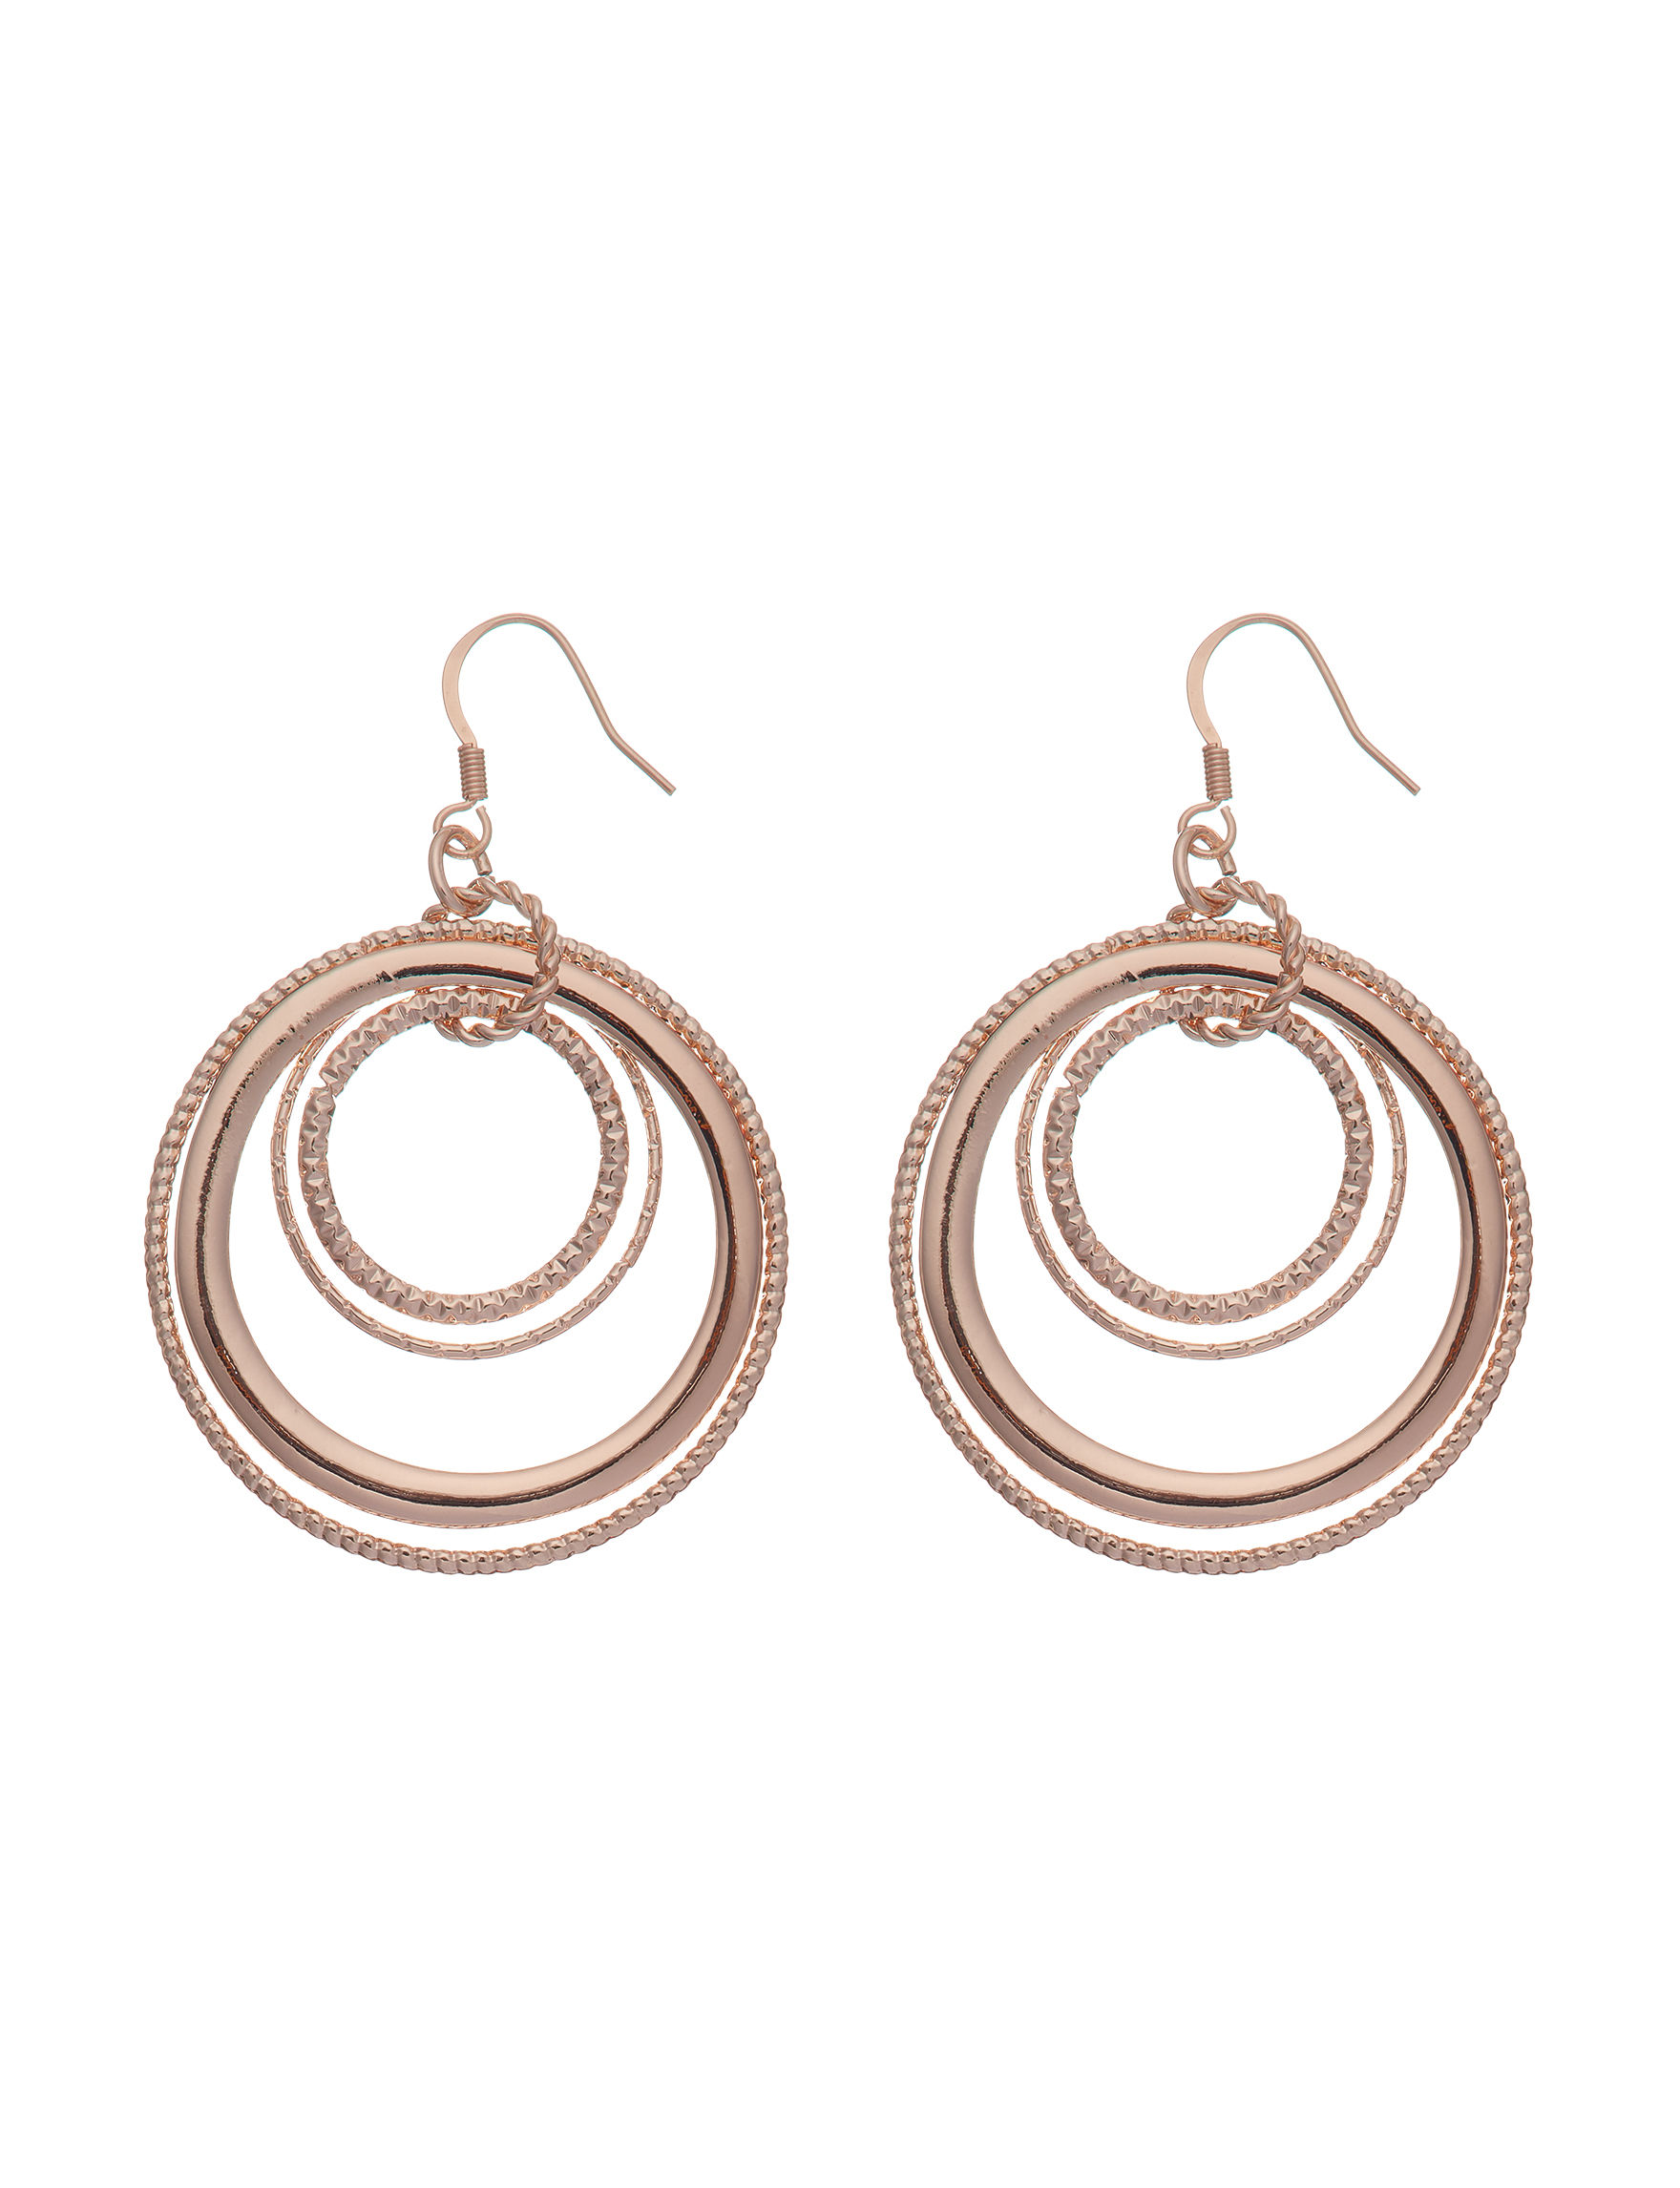 G by Guess Rose Gold Drops Earrings Fashion Jewelry